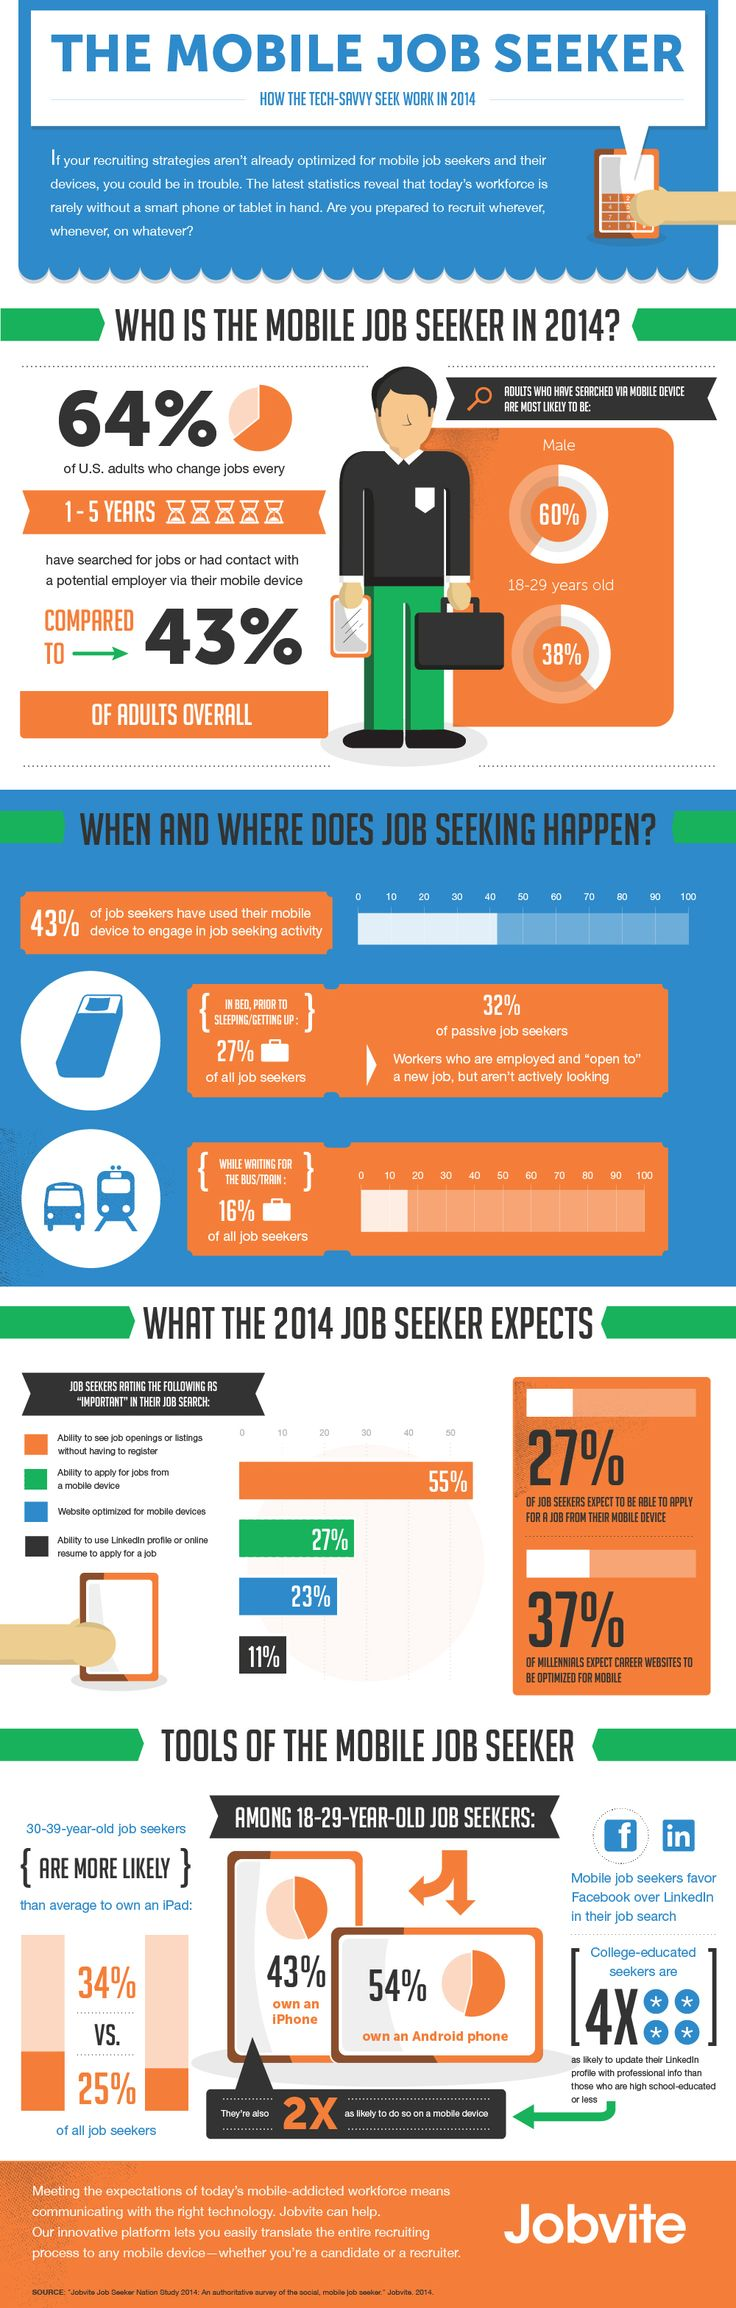 How Tech-Savvy Mobile Job Seekers Look for Work in 2014 [TECH TUESDAY] #job #rh #rh2.0